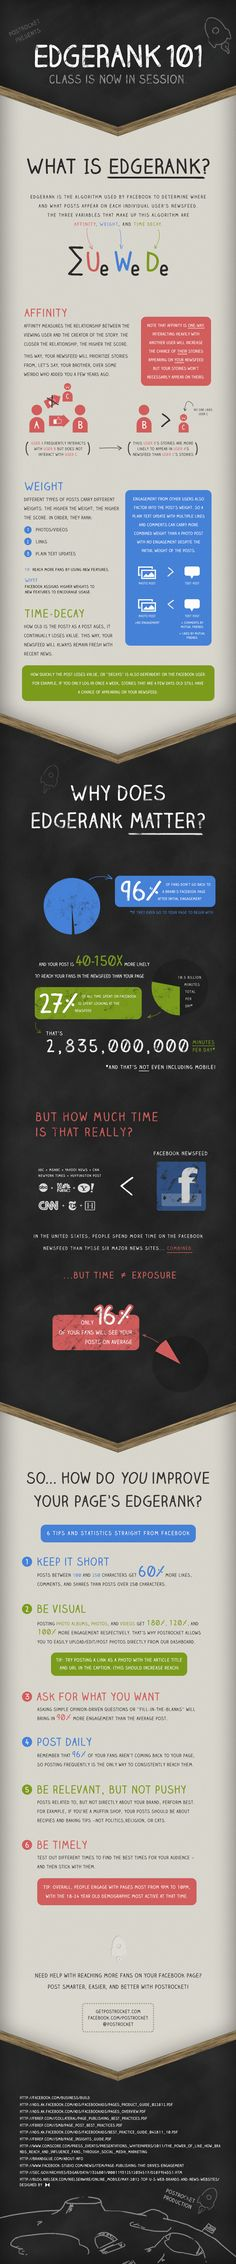 Facebook EdgeRank Infographic by PostRocket